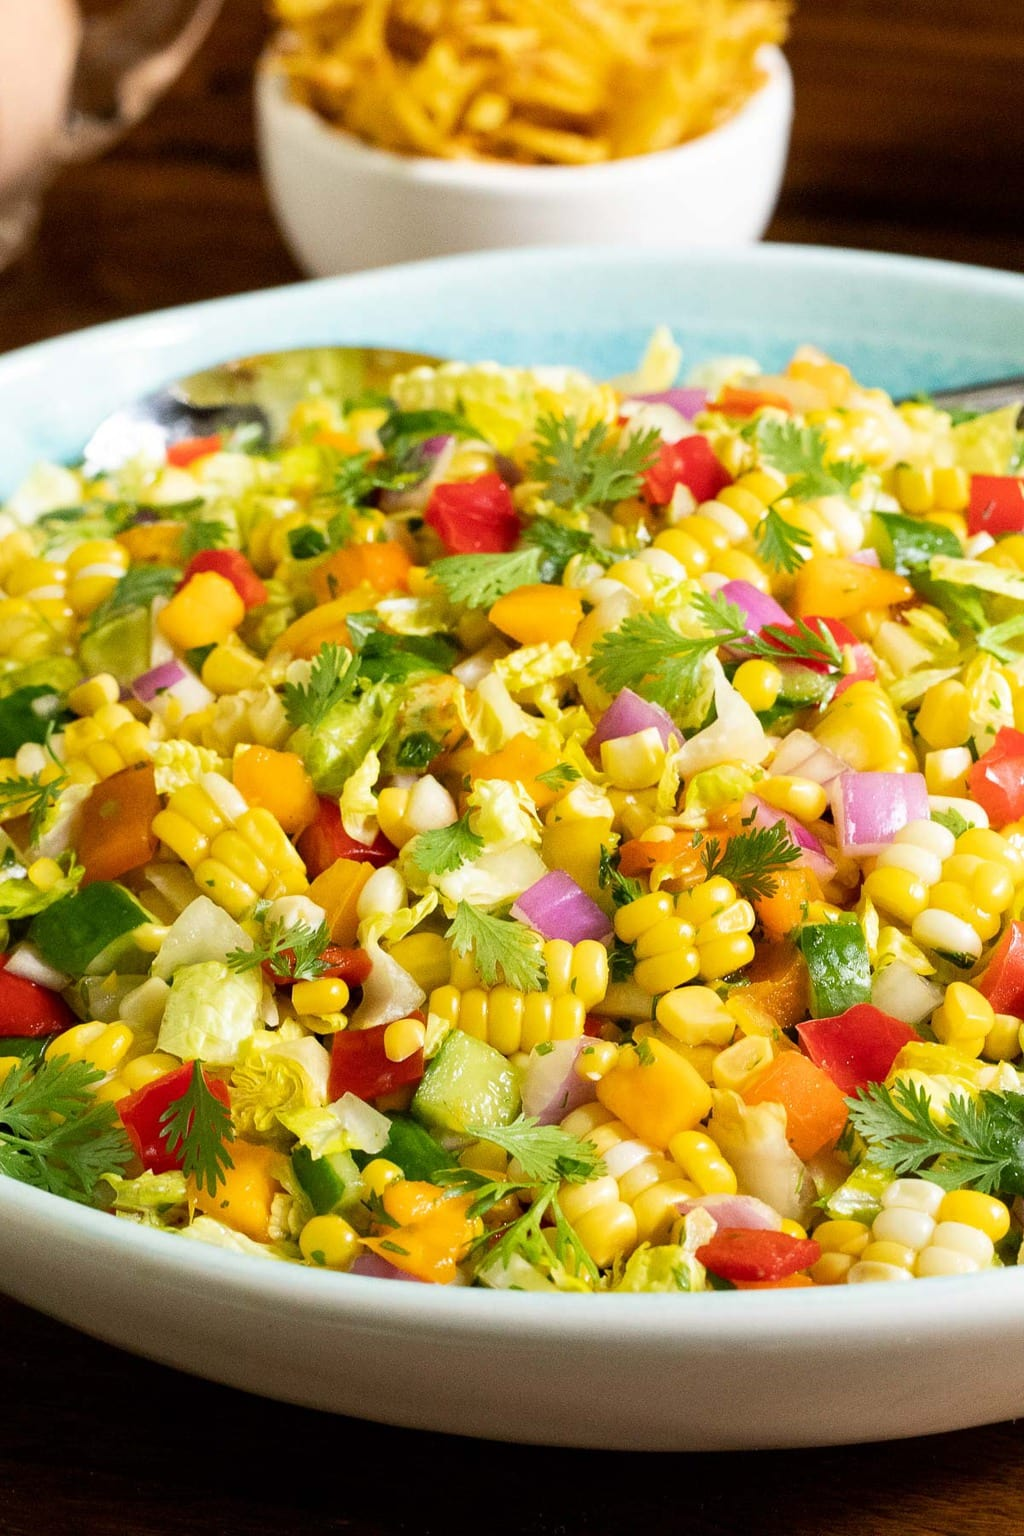 Vertical closeup photo of a Chopped Mexican Street Corn Salad in a white and turquoise serving dish.